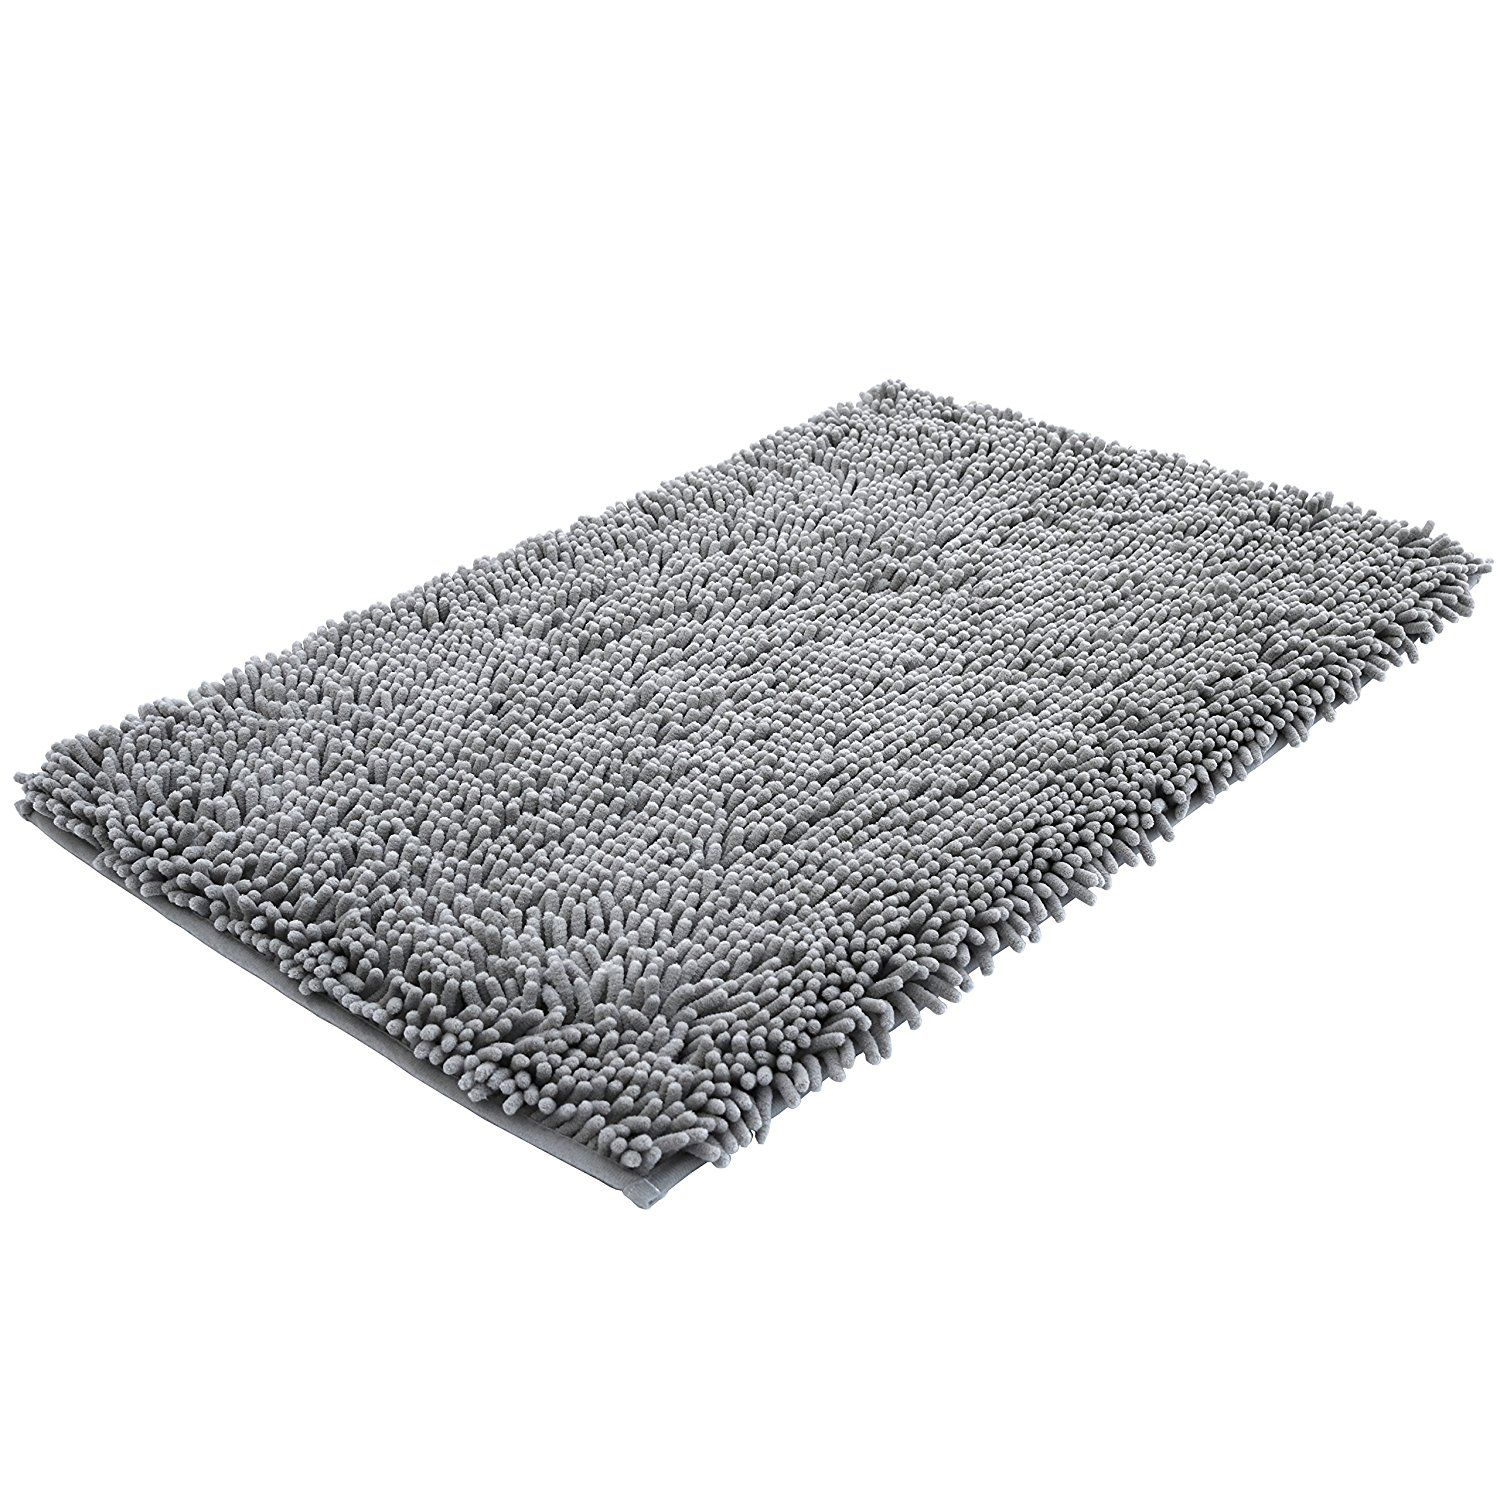 Some Important Facts About Bathroom Mats Bathroom Mat Amazon Com Super Soft Bath Mat Microfiber Shag Bathroom R Grey Bathroom Rugs Bathroom Rugs Soft Bath Mat